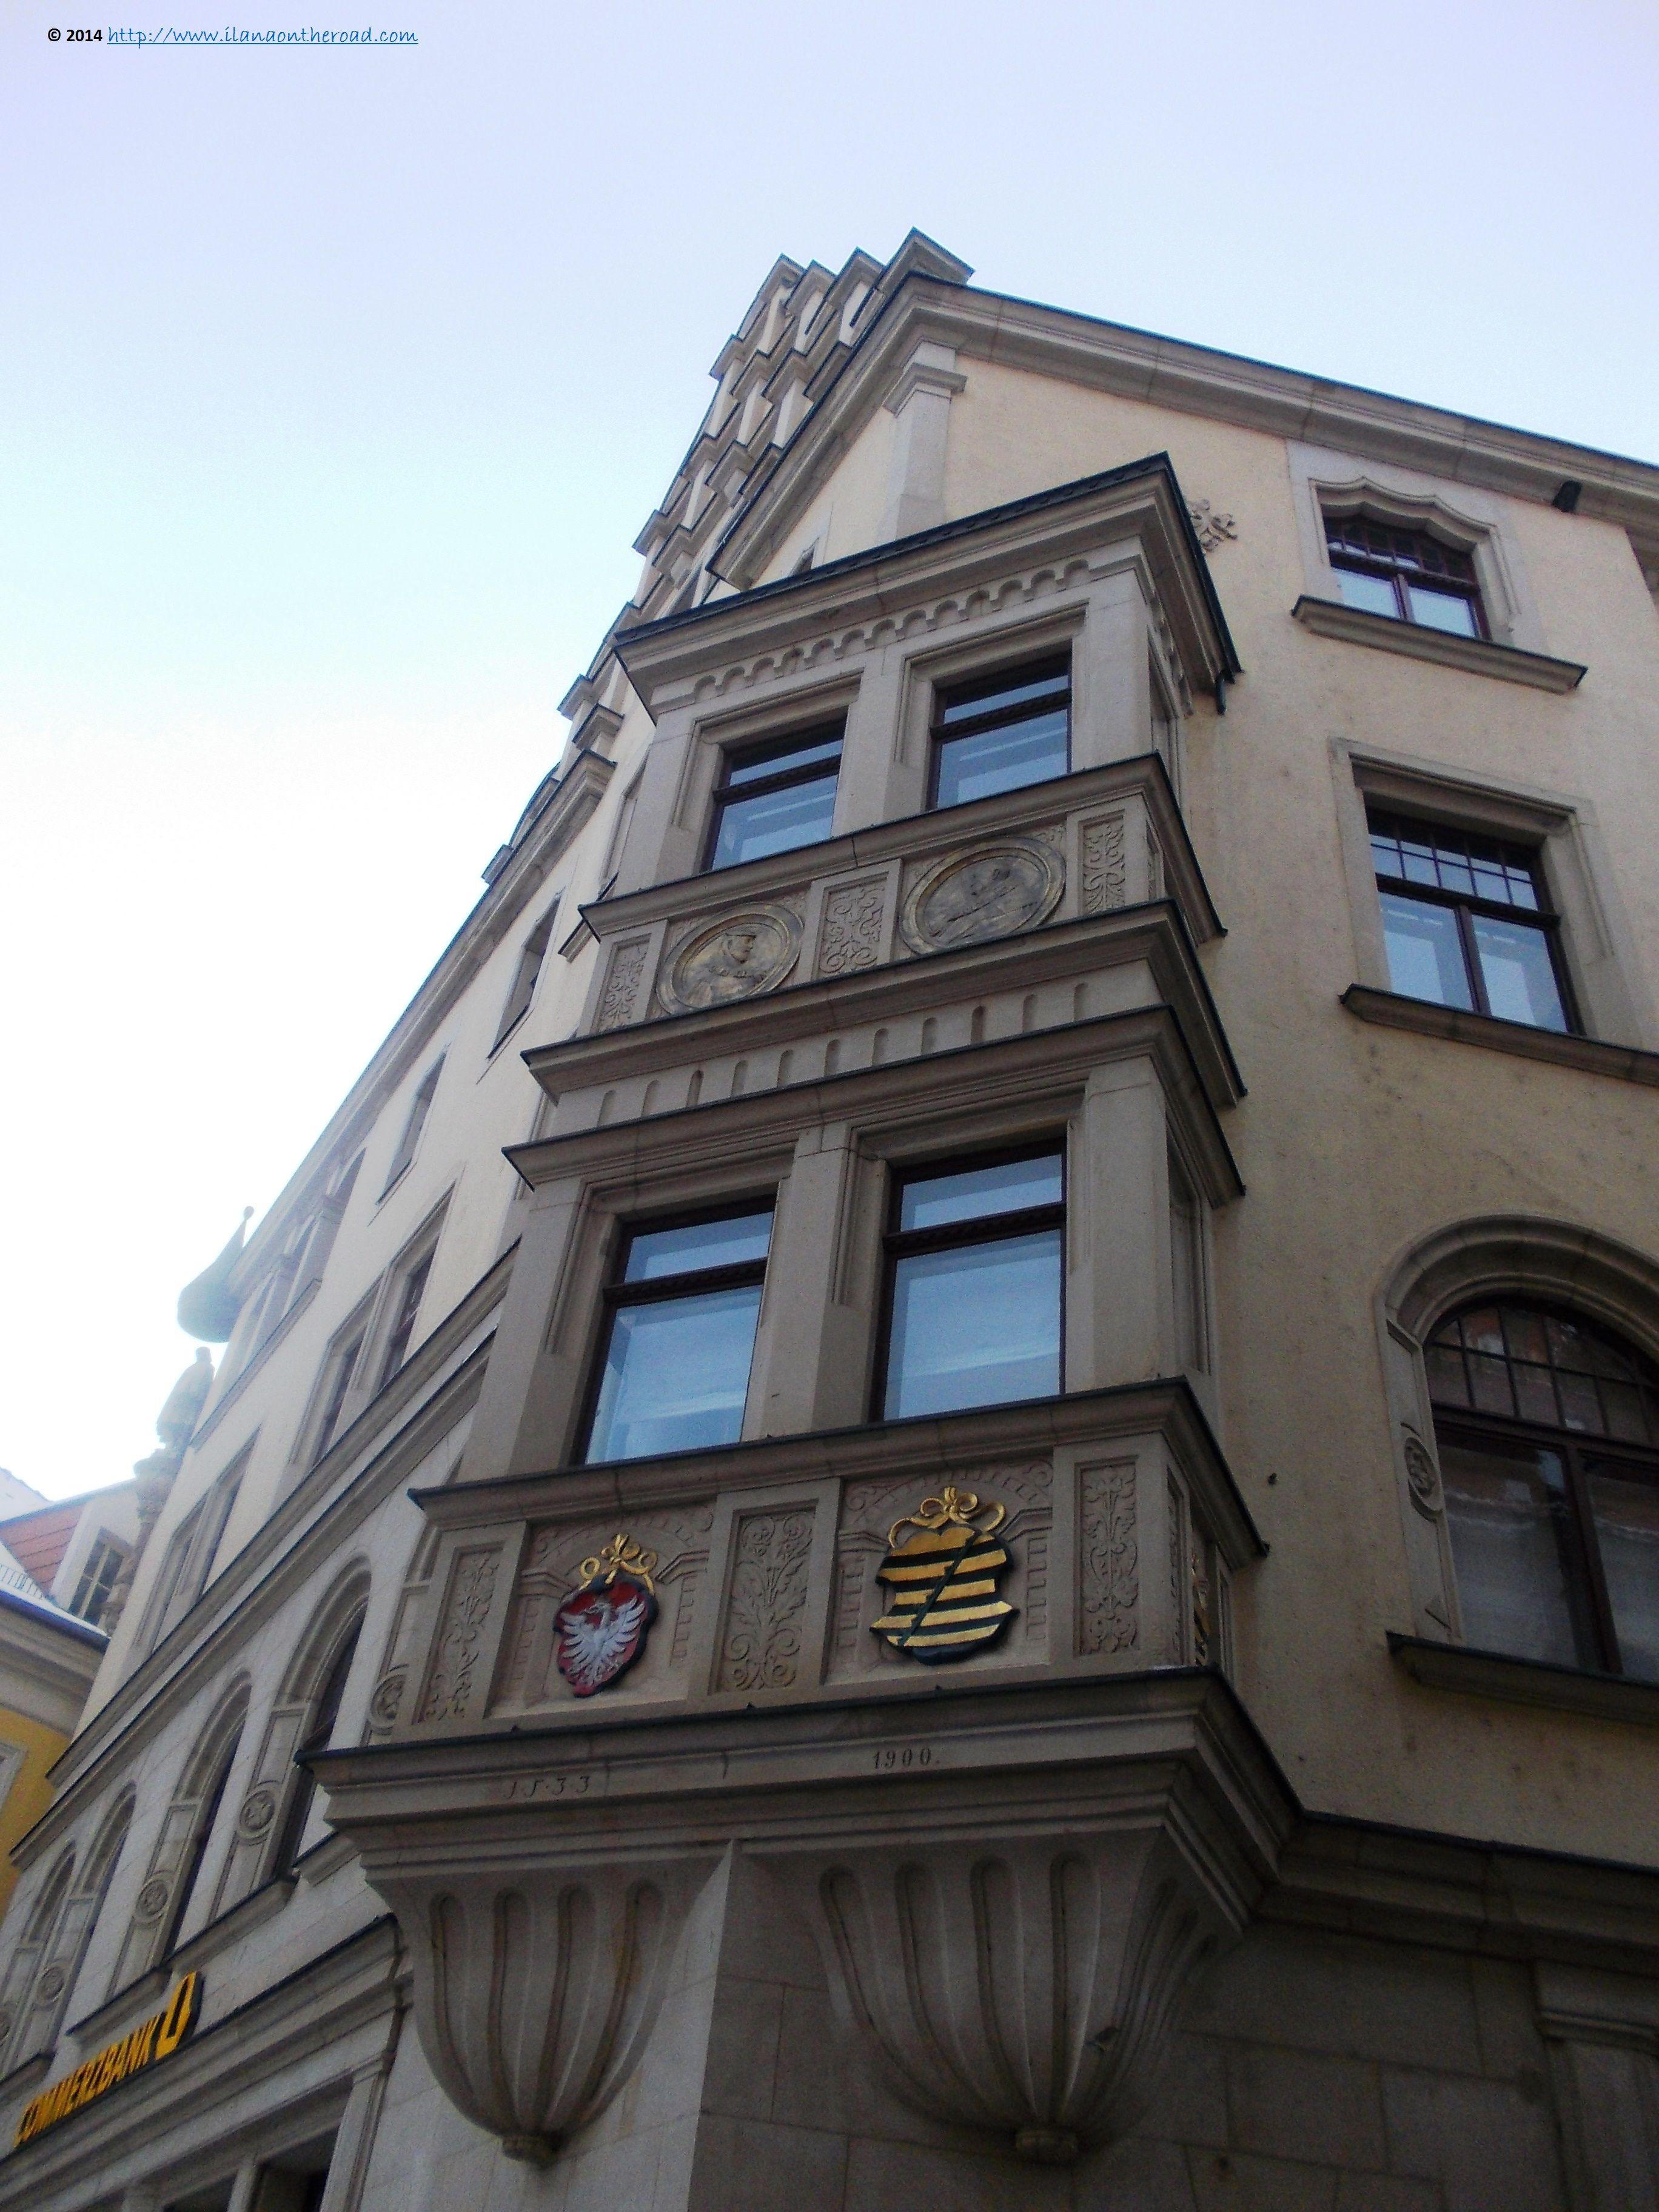 Commerzbank building, a historical architecture with a practical touch